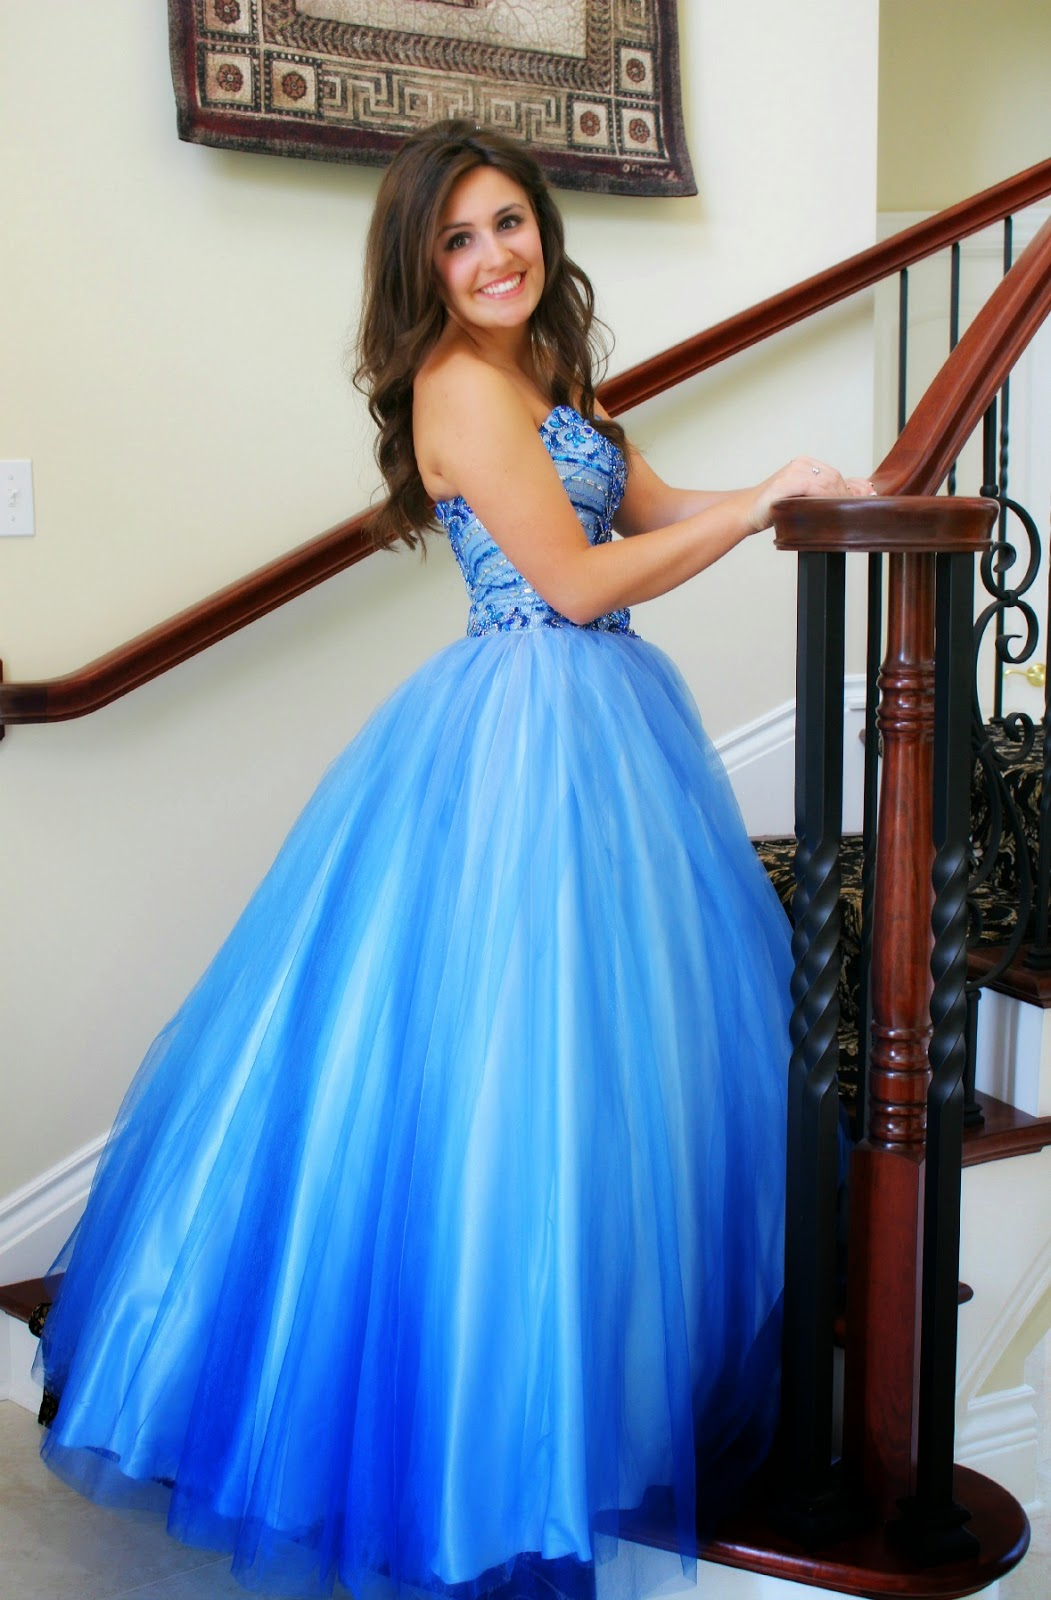 Style, Decor & More: Princess Diaries ~ A Fairytale Prom Gown!